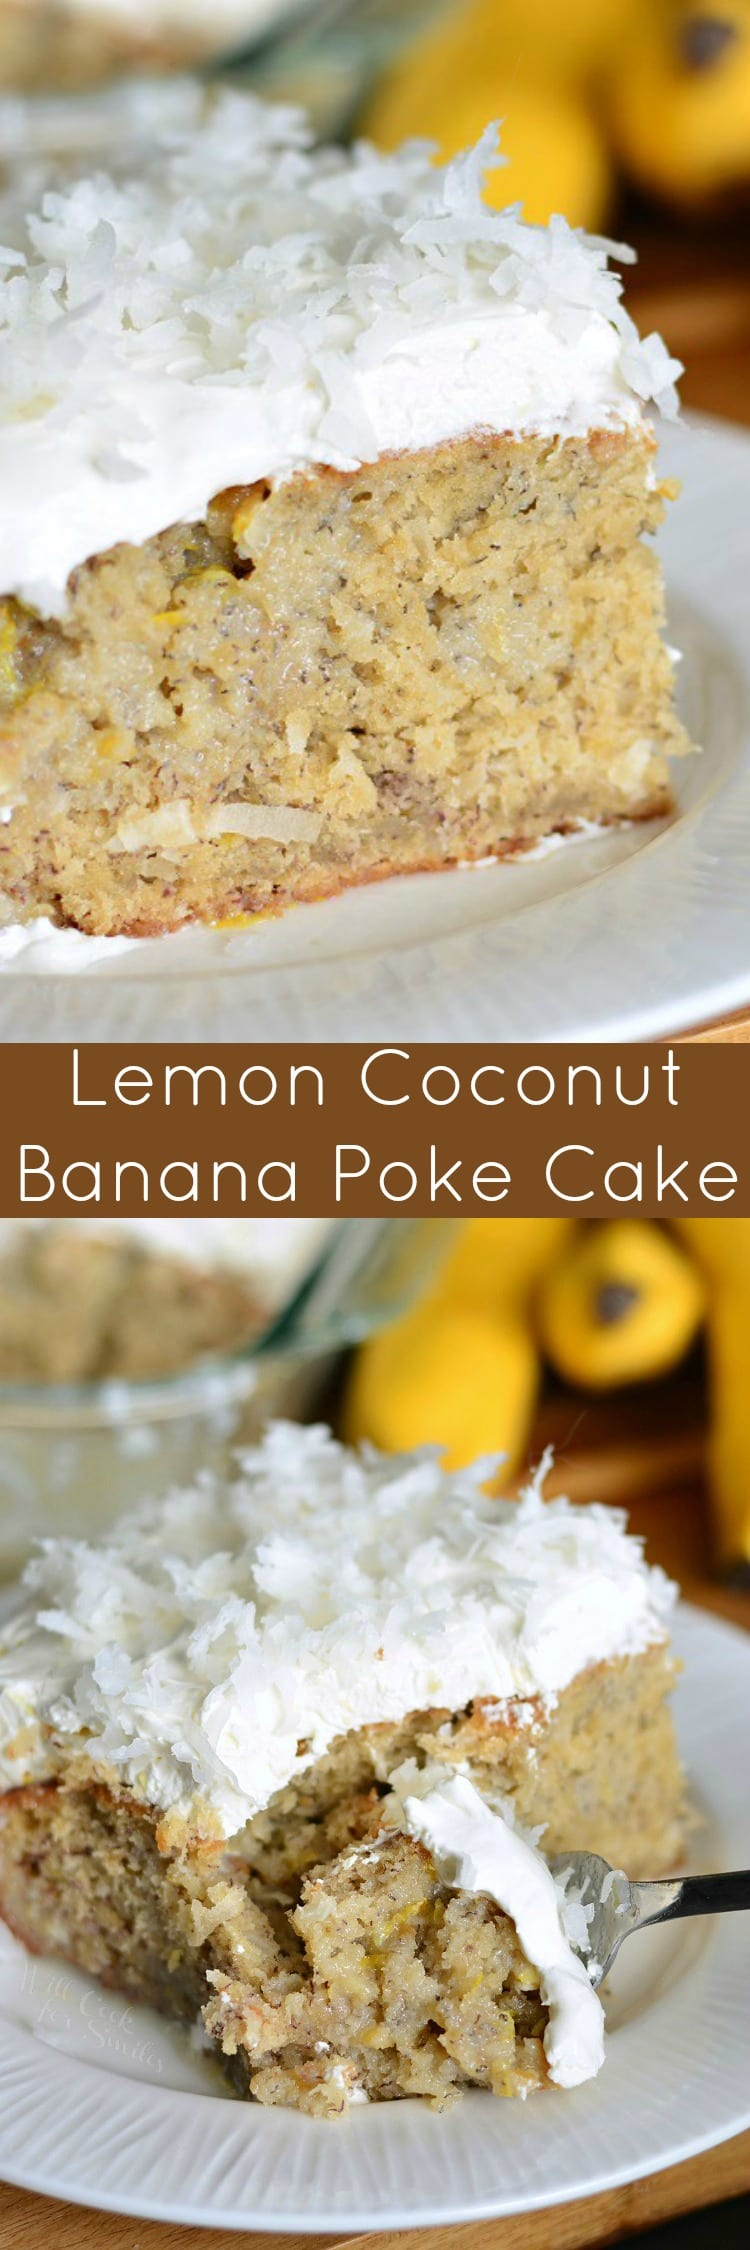 Lemon Coconut Banana Poke Cake on a plate collage